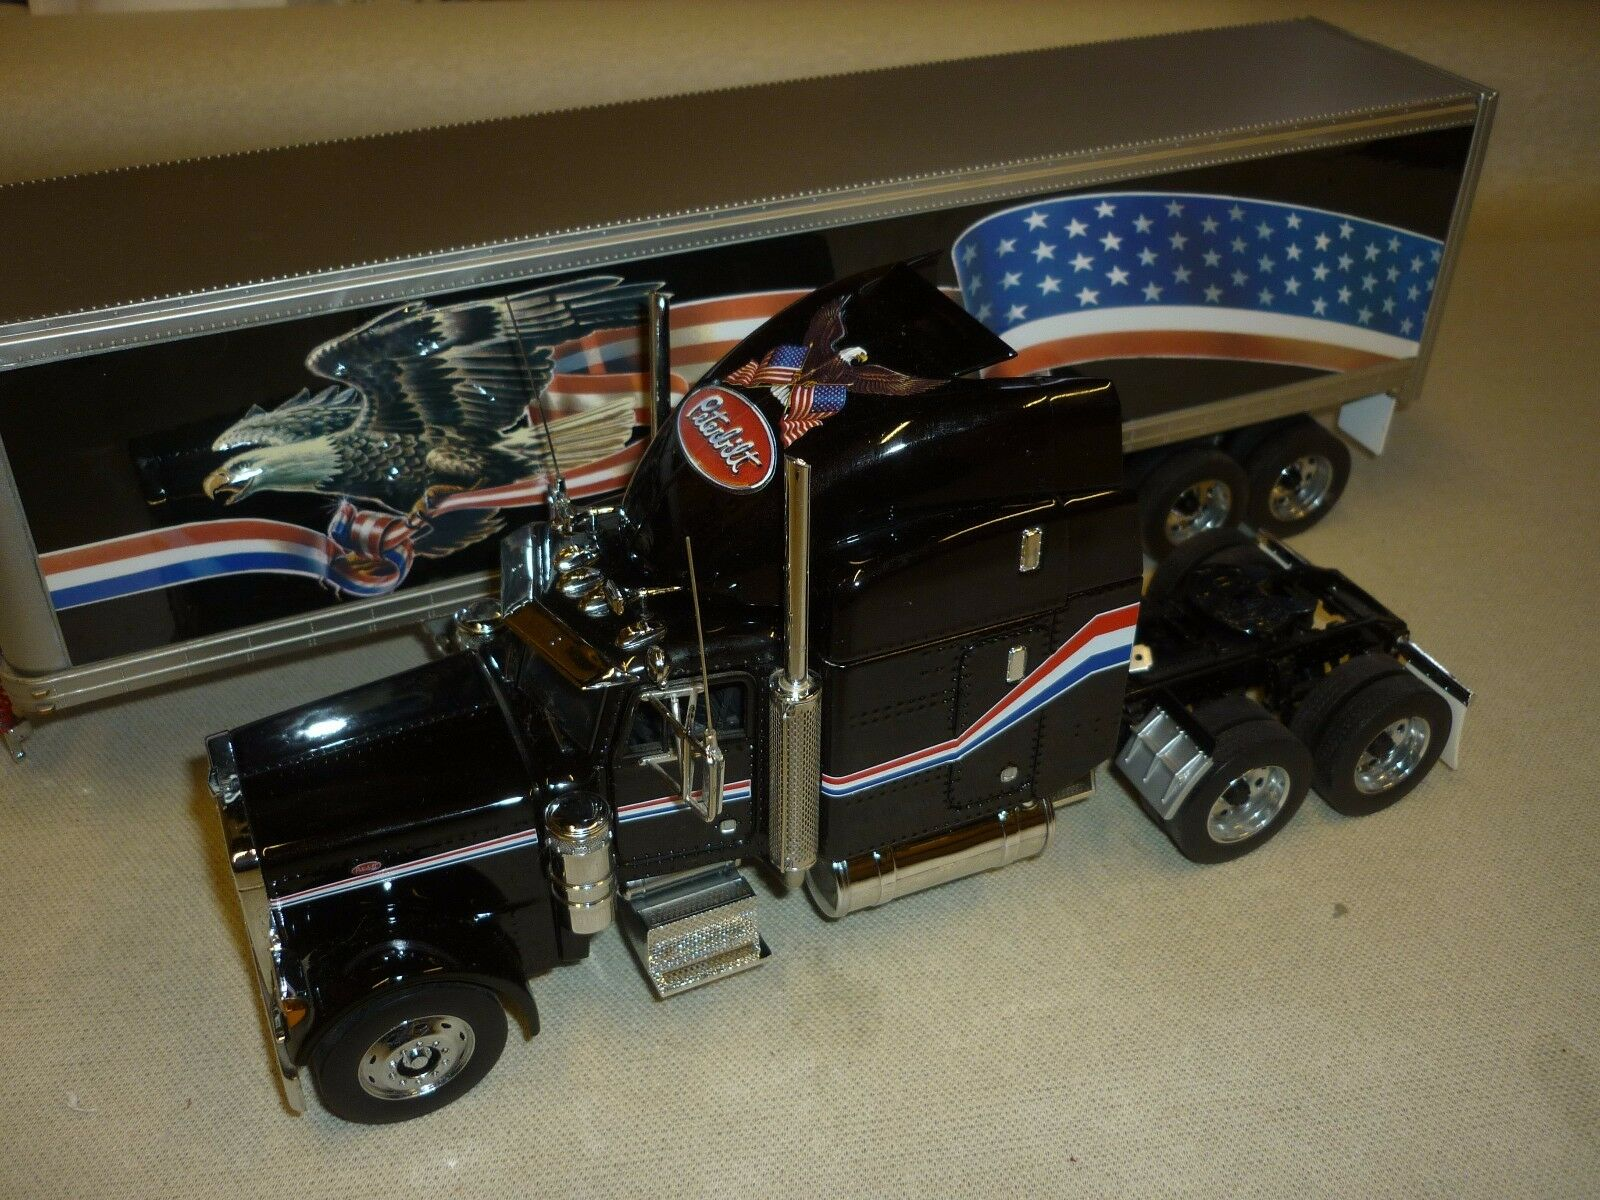 A Franklin mint scale model of a Peterbilt model 379, with reefer trailer